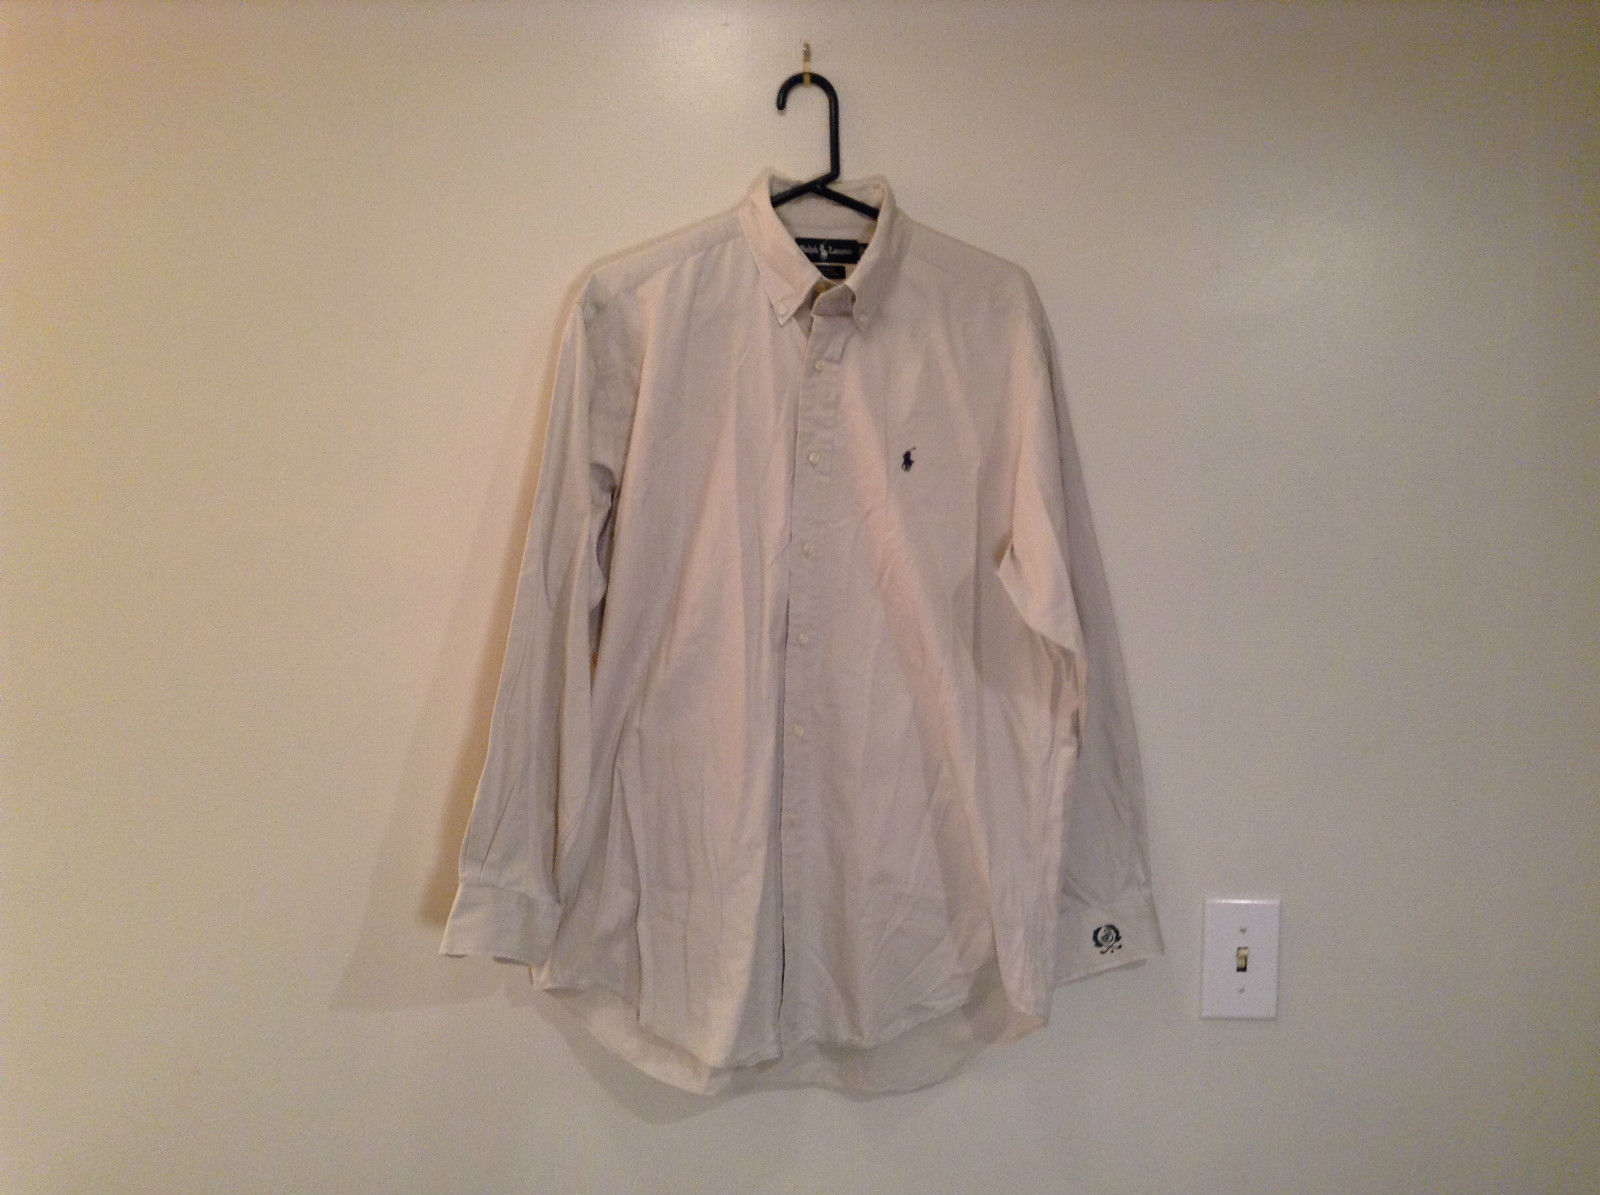 Light Gray 100 Percent Cotton Long Sleeve Ralph Lauren Shirt Size M Button Up